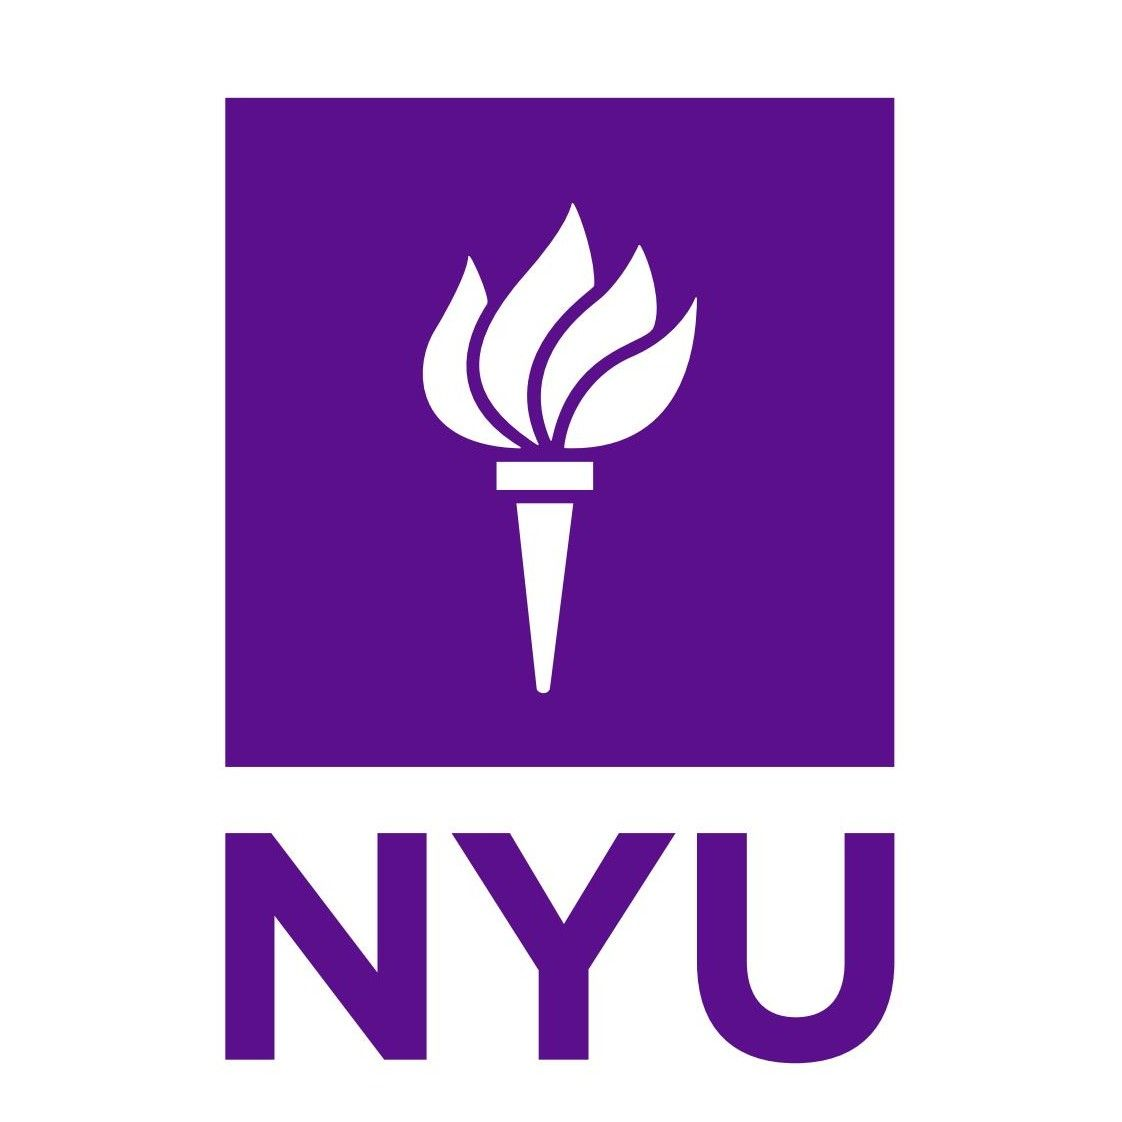 NYU Logo [New York University] PNG Free Downloads, Logo Brand Emblems |  Journalism college, York university, Nyu